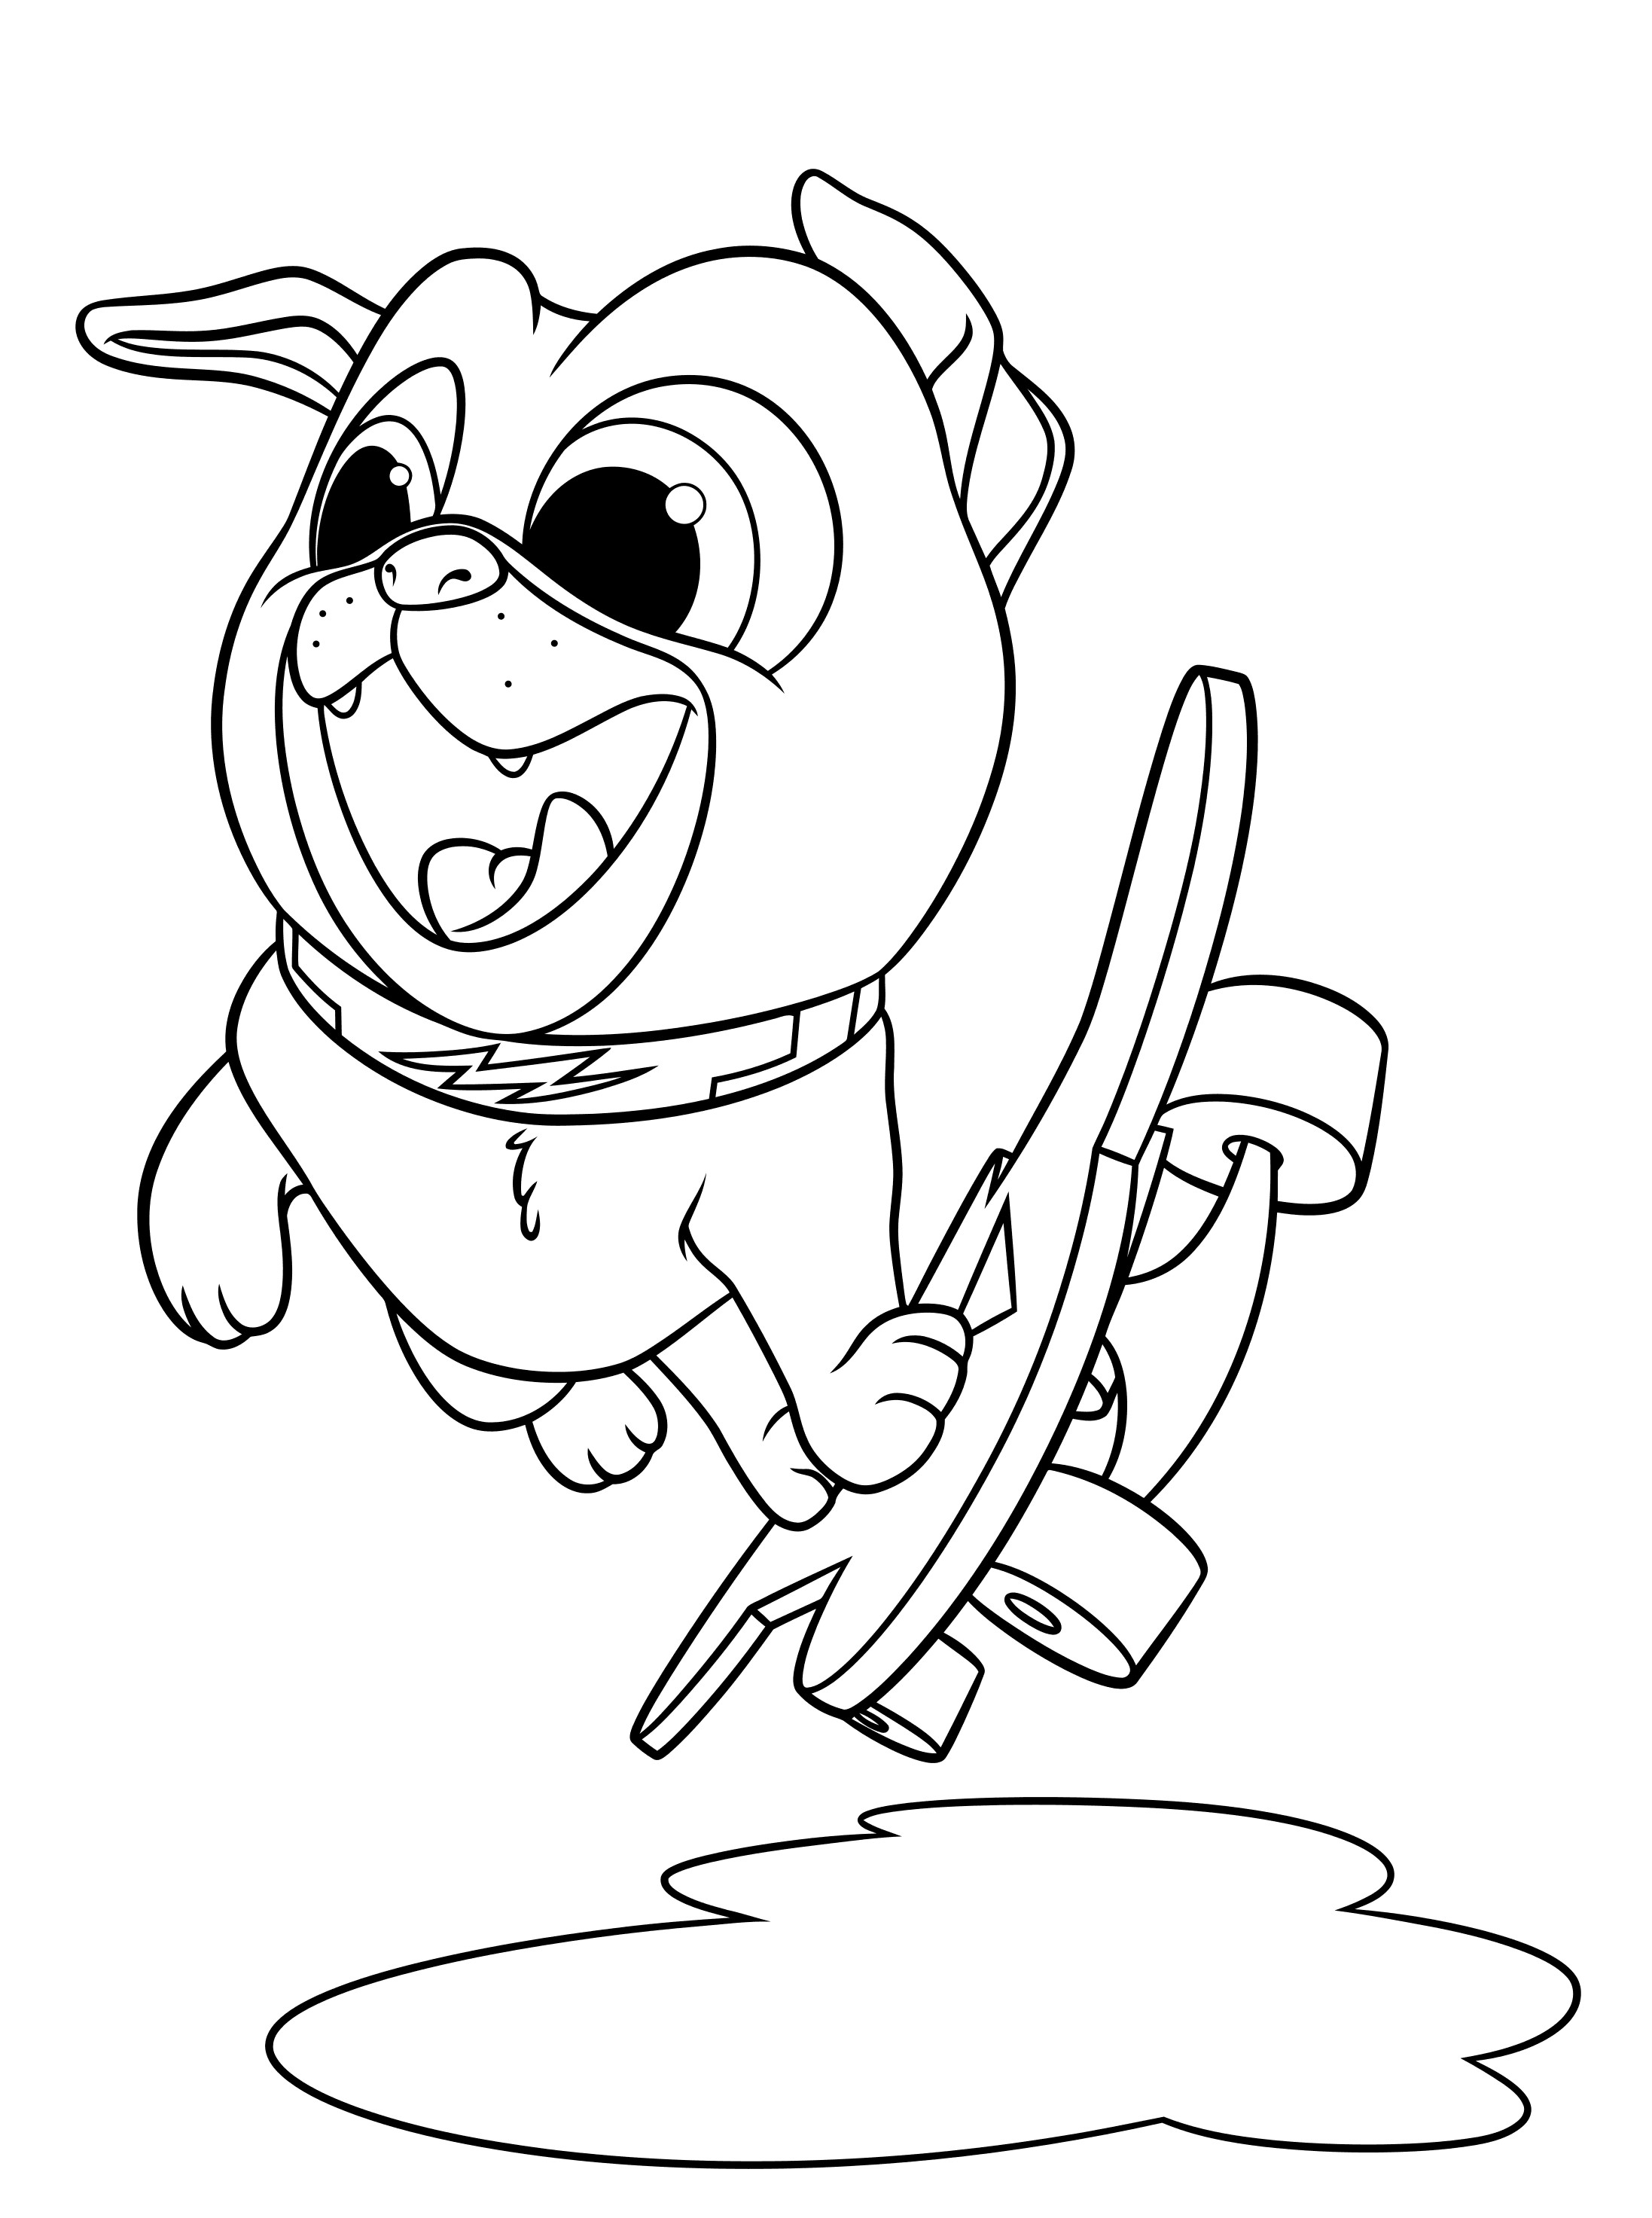 puppy coloring pages printable free free printable puppies coloring pages for kids pages coloring free puppy printable